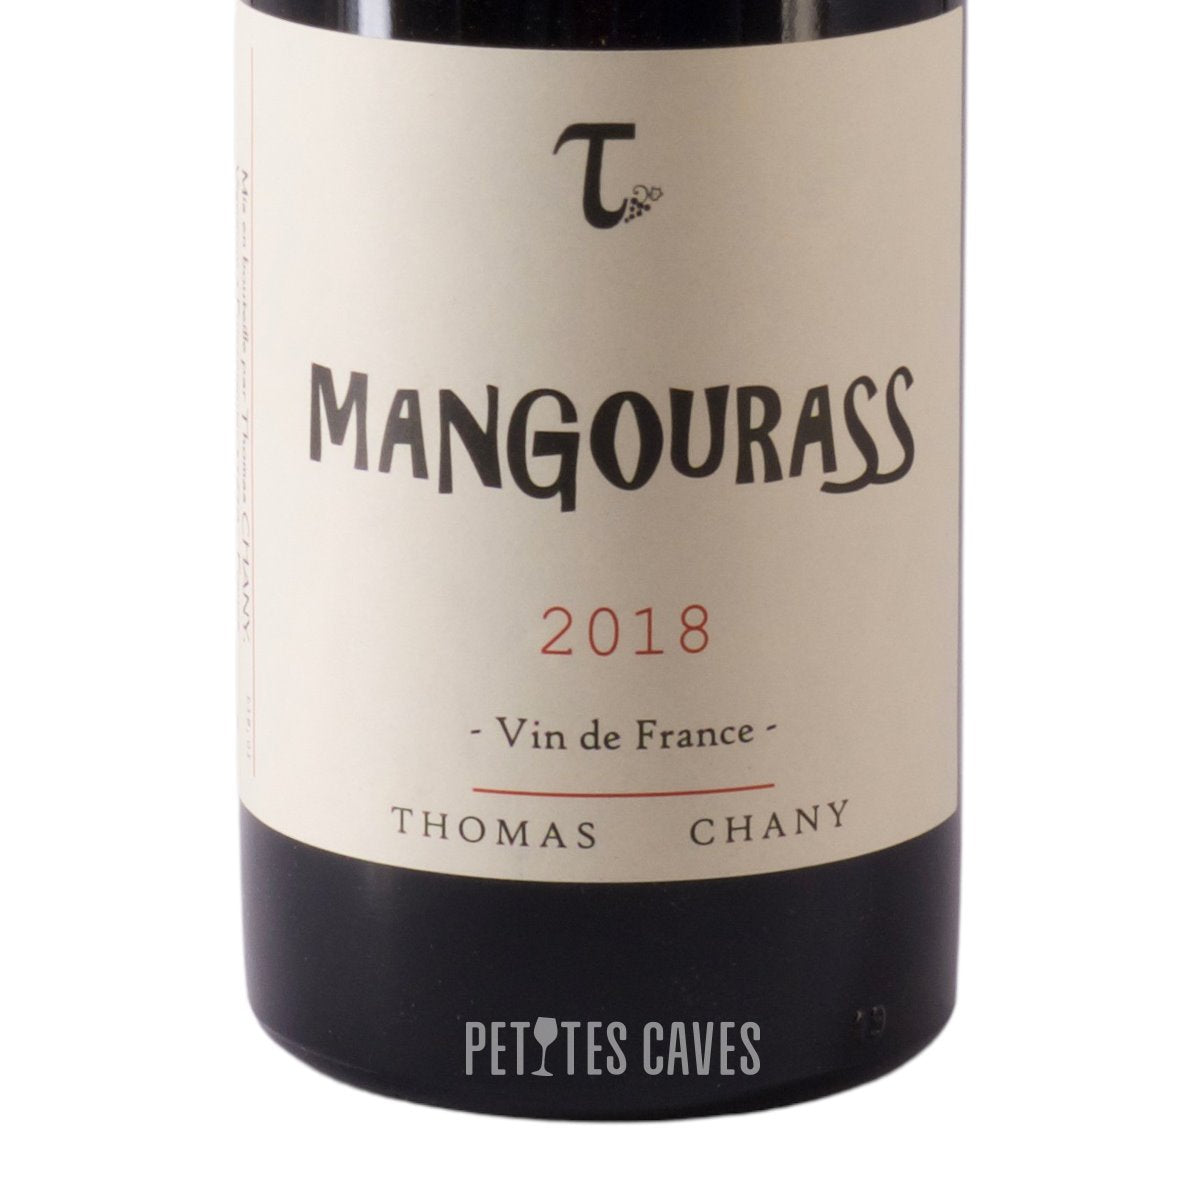 Mangourass 2018 - Vin de France - Thomas Chany zoom